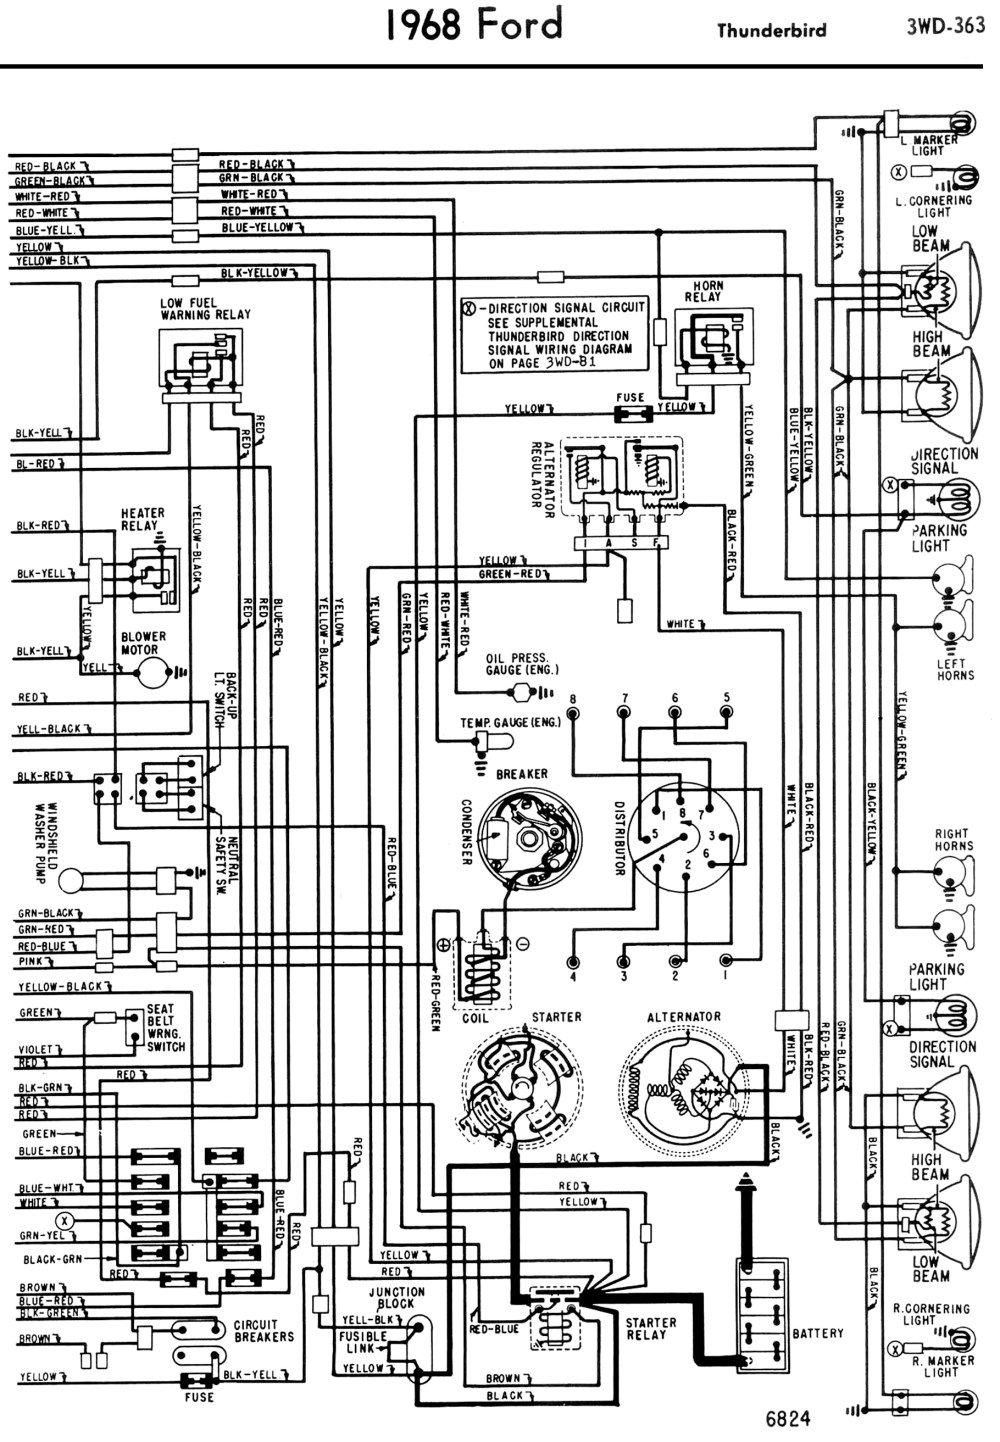 medium resolution of 1958 68 ford electrical schematics ford f 250 4x4 wiring diagram 1968 f250 wiring diagrams